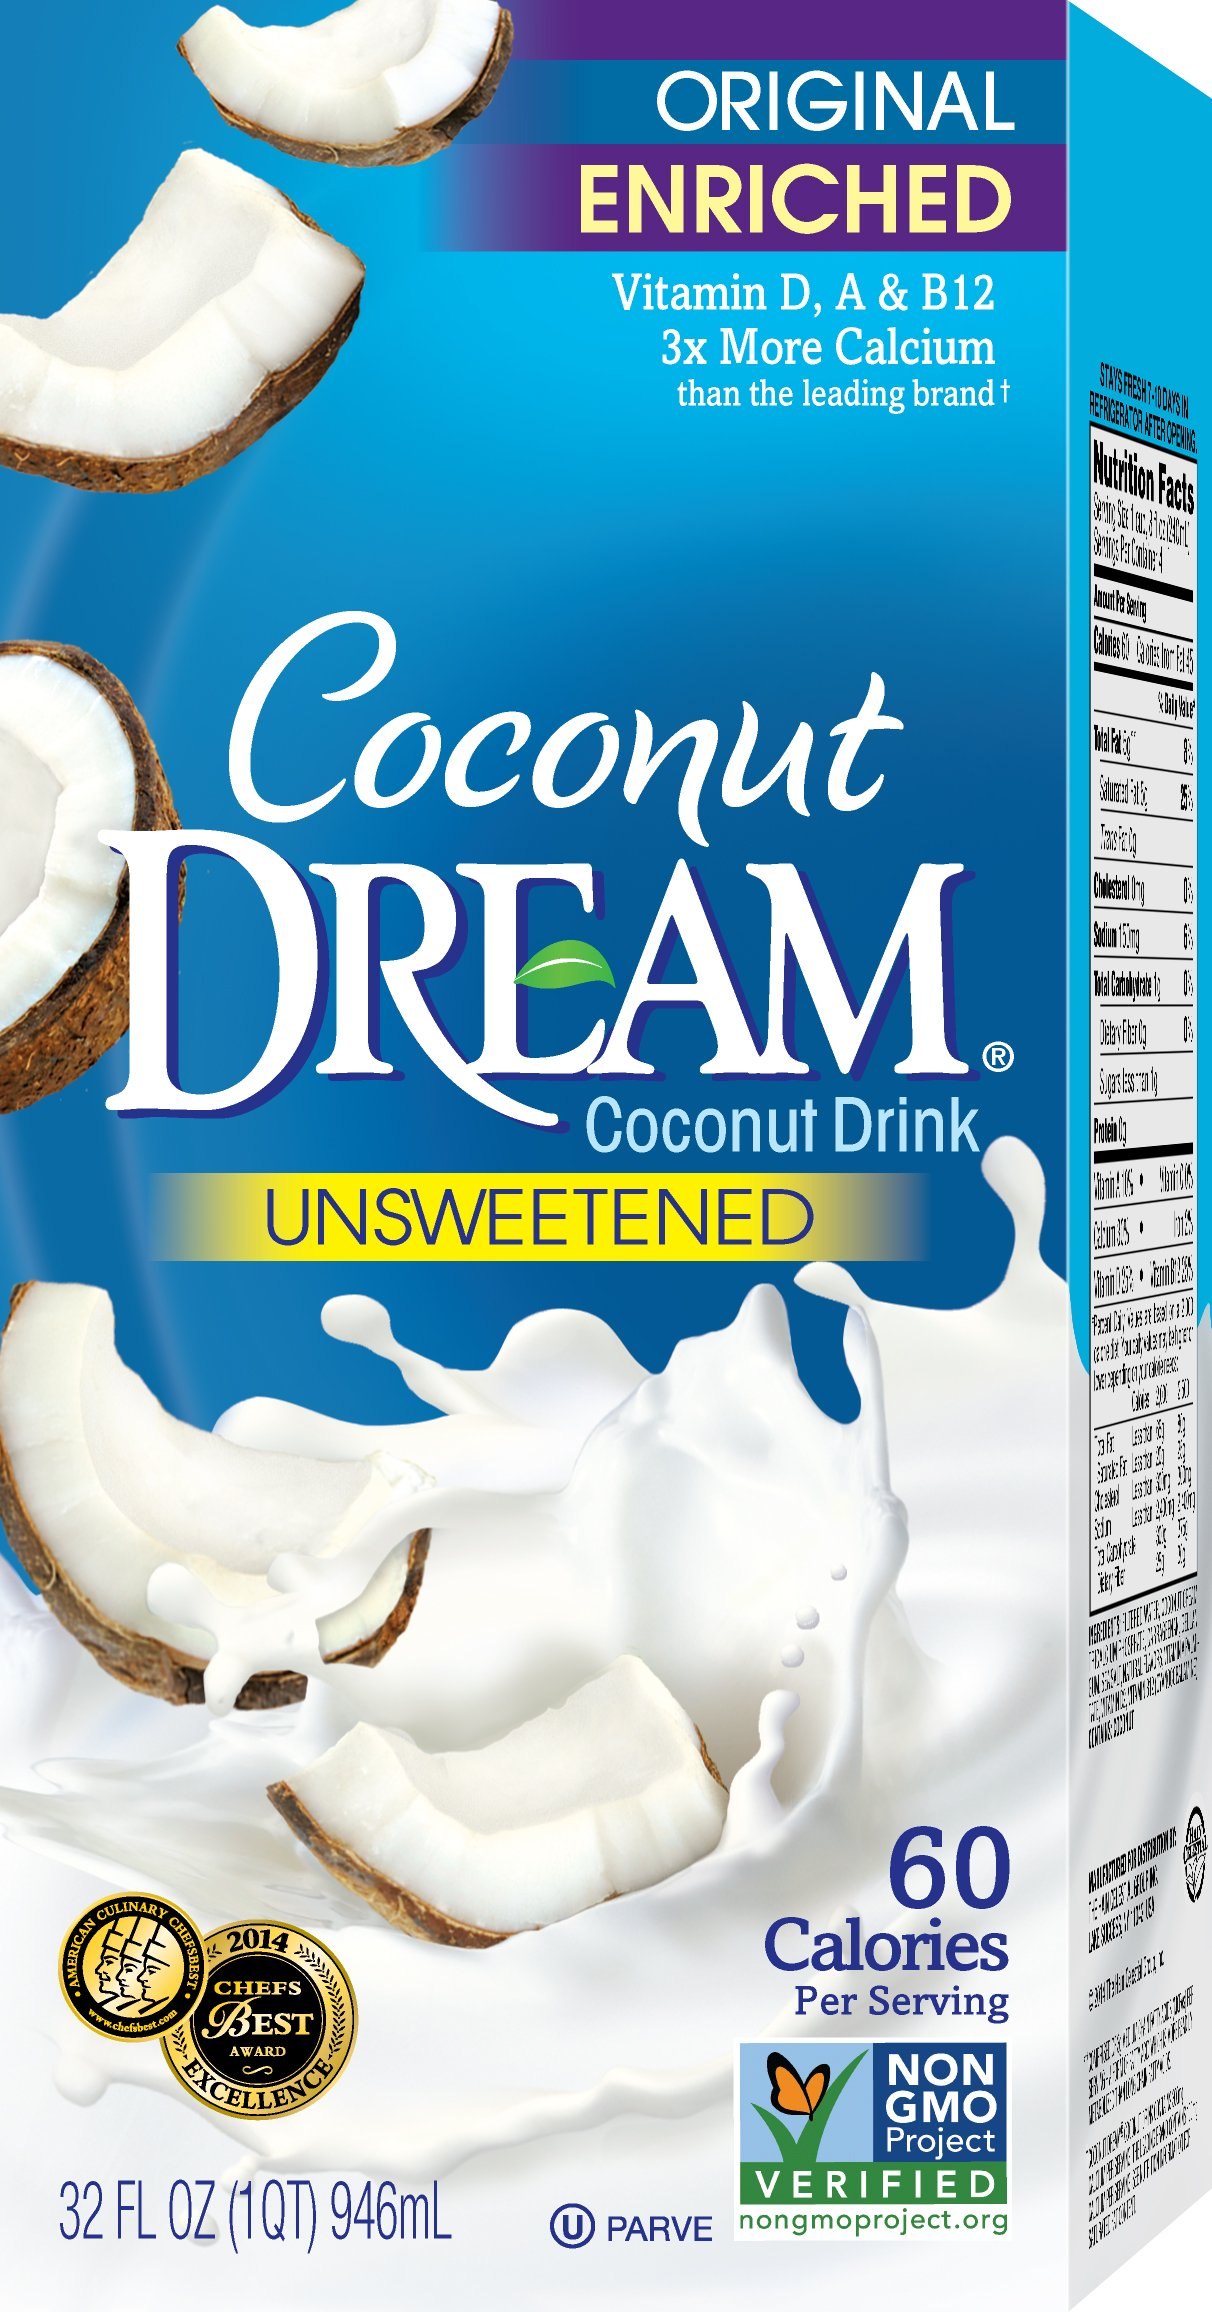 COCONUT DREAM Enriched Original Unsweetened Coconut Drink, 32 fl. oz. (Pack of 12)